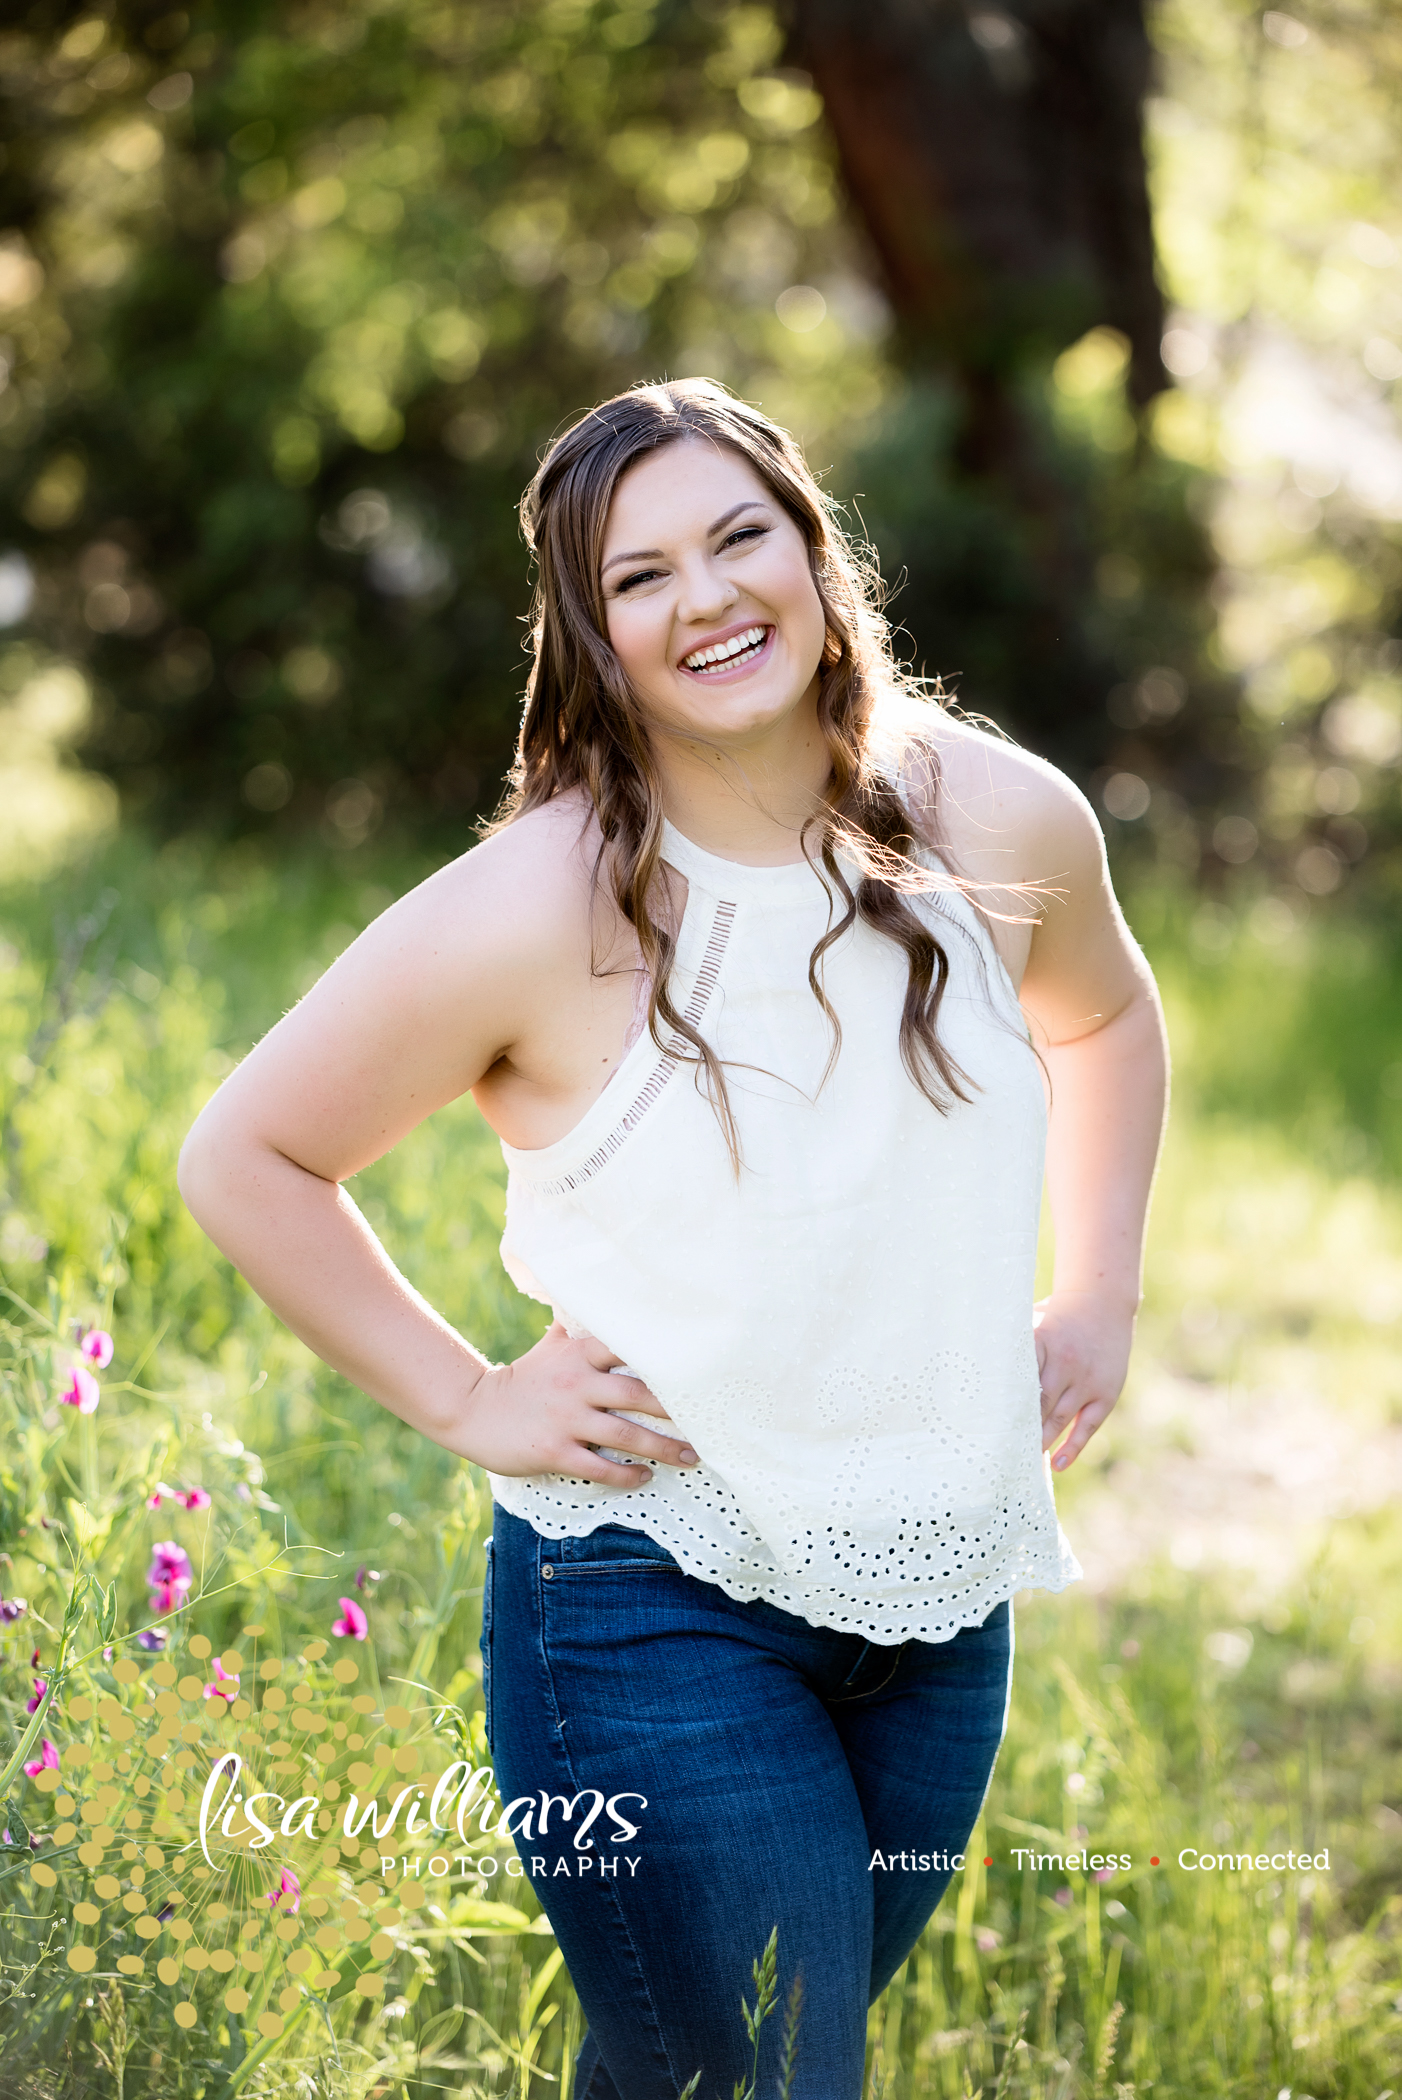 Lisa Williams photography – grass valley, Ca - Nevada county photographer – Colfax, CA – Rocklin – Roseville - Nevada City – Senior Portrait Photography – Alexa3.jpg